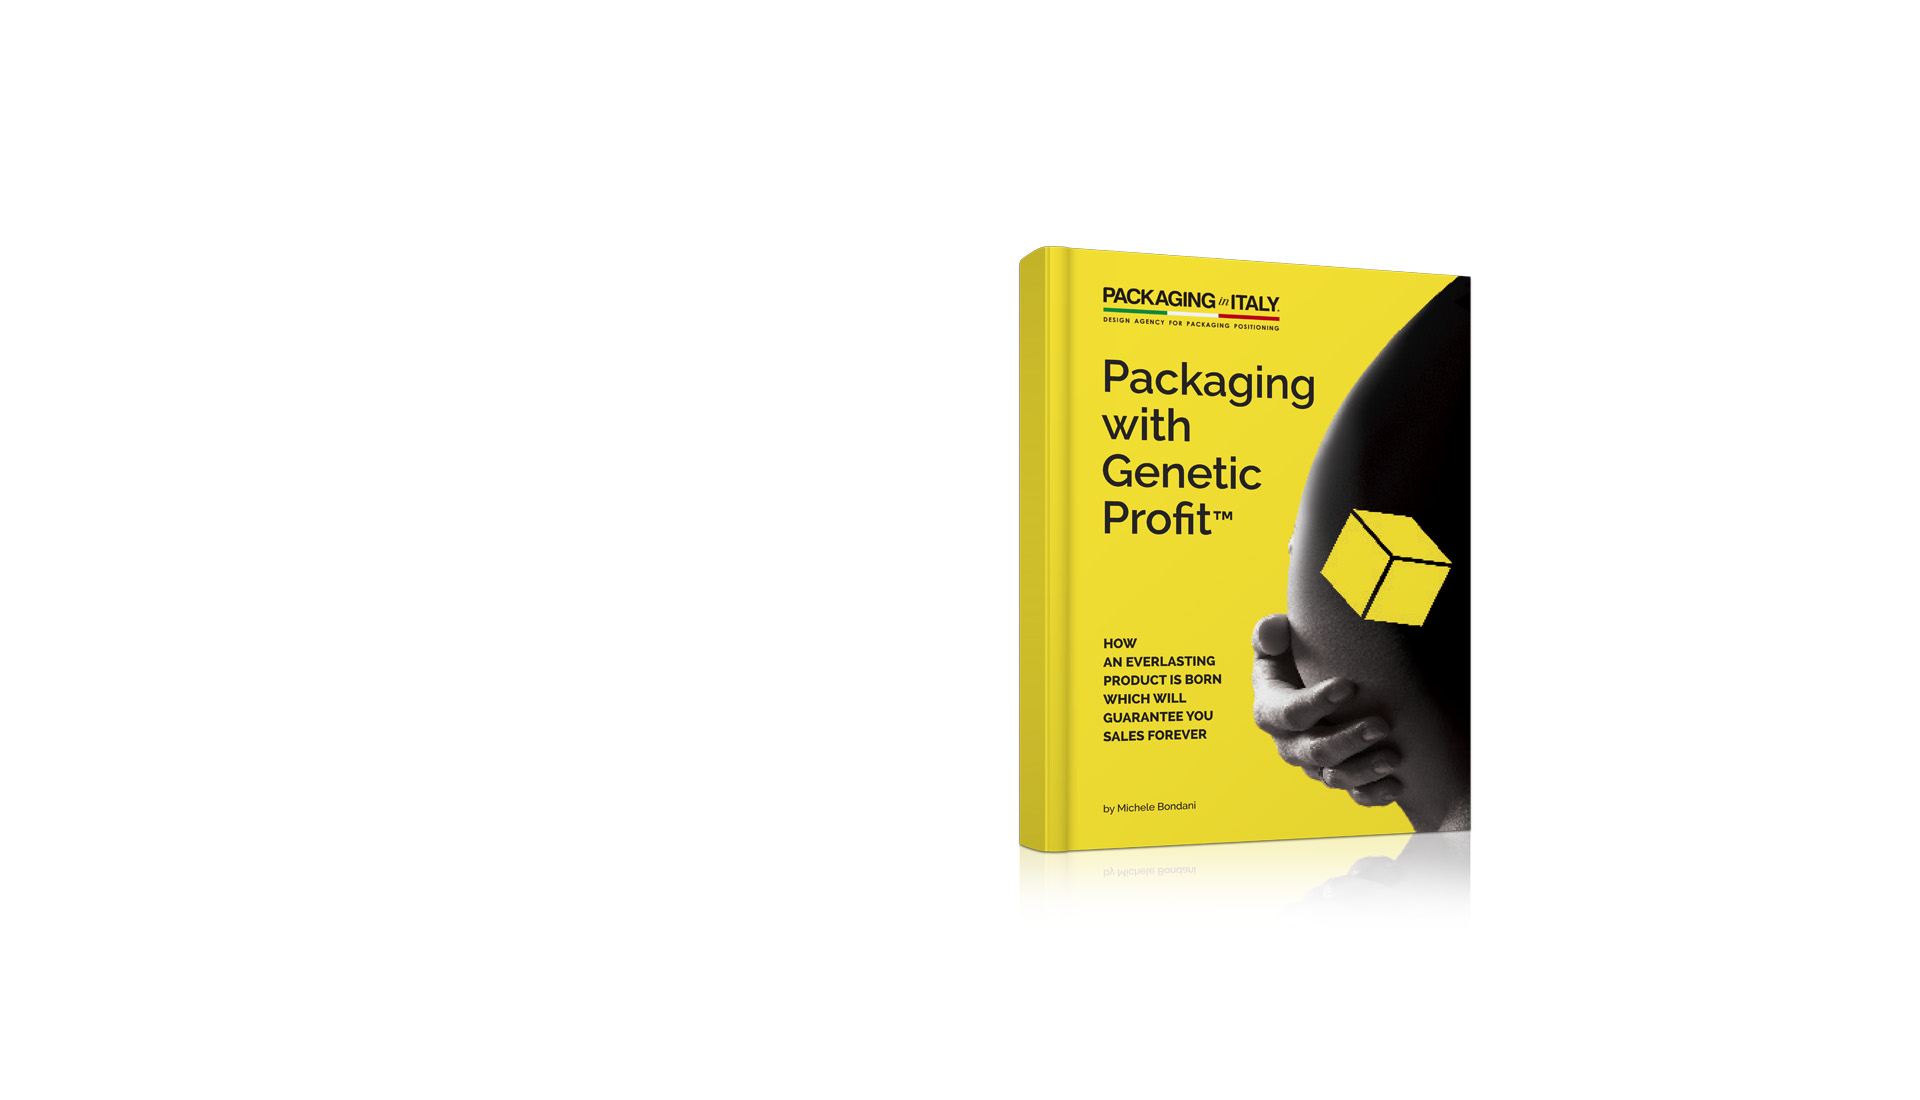 SLIDE 02 – IL PACKAGING OF GENETIC PROFIT™